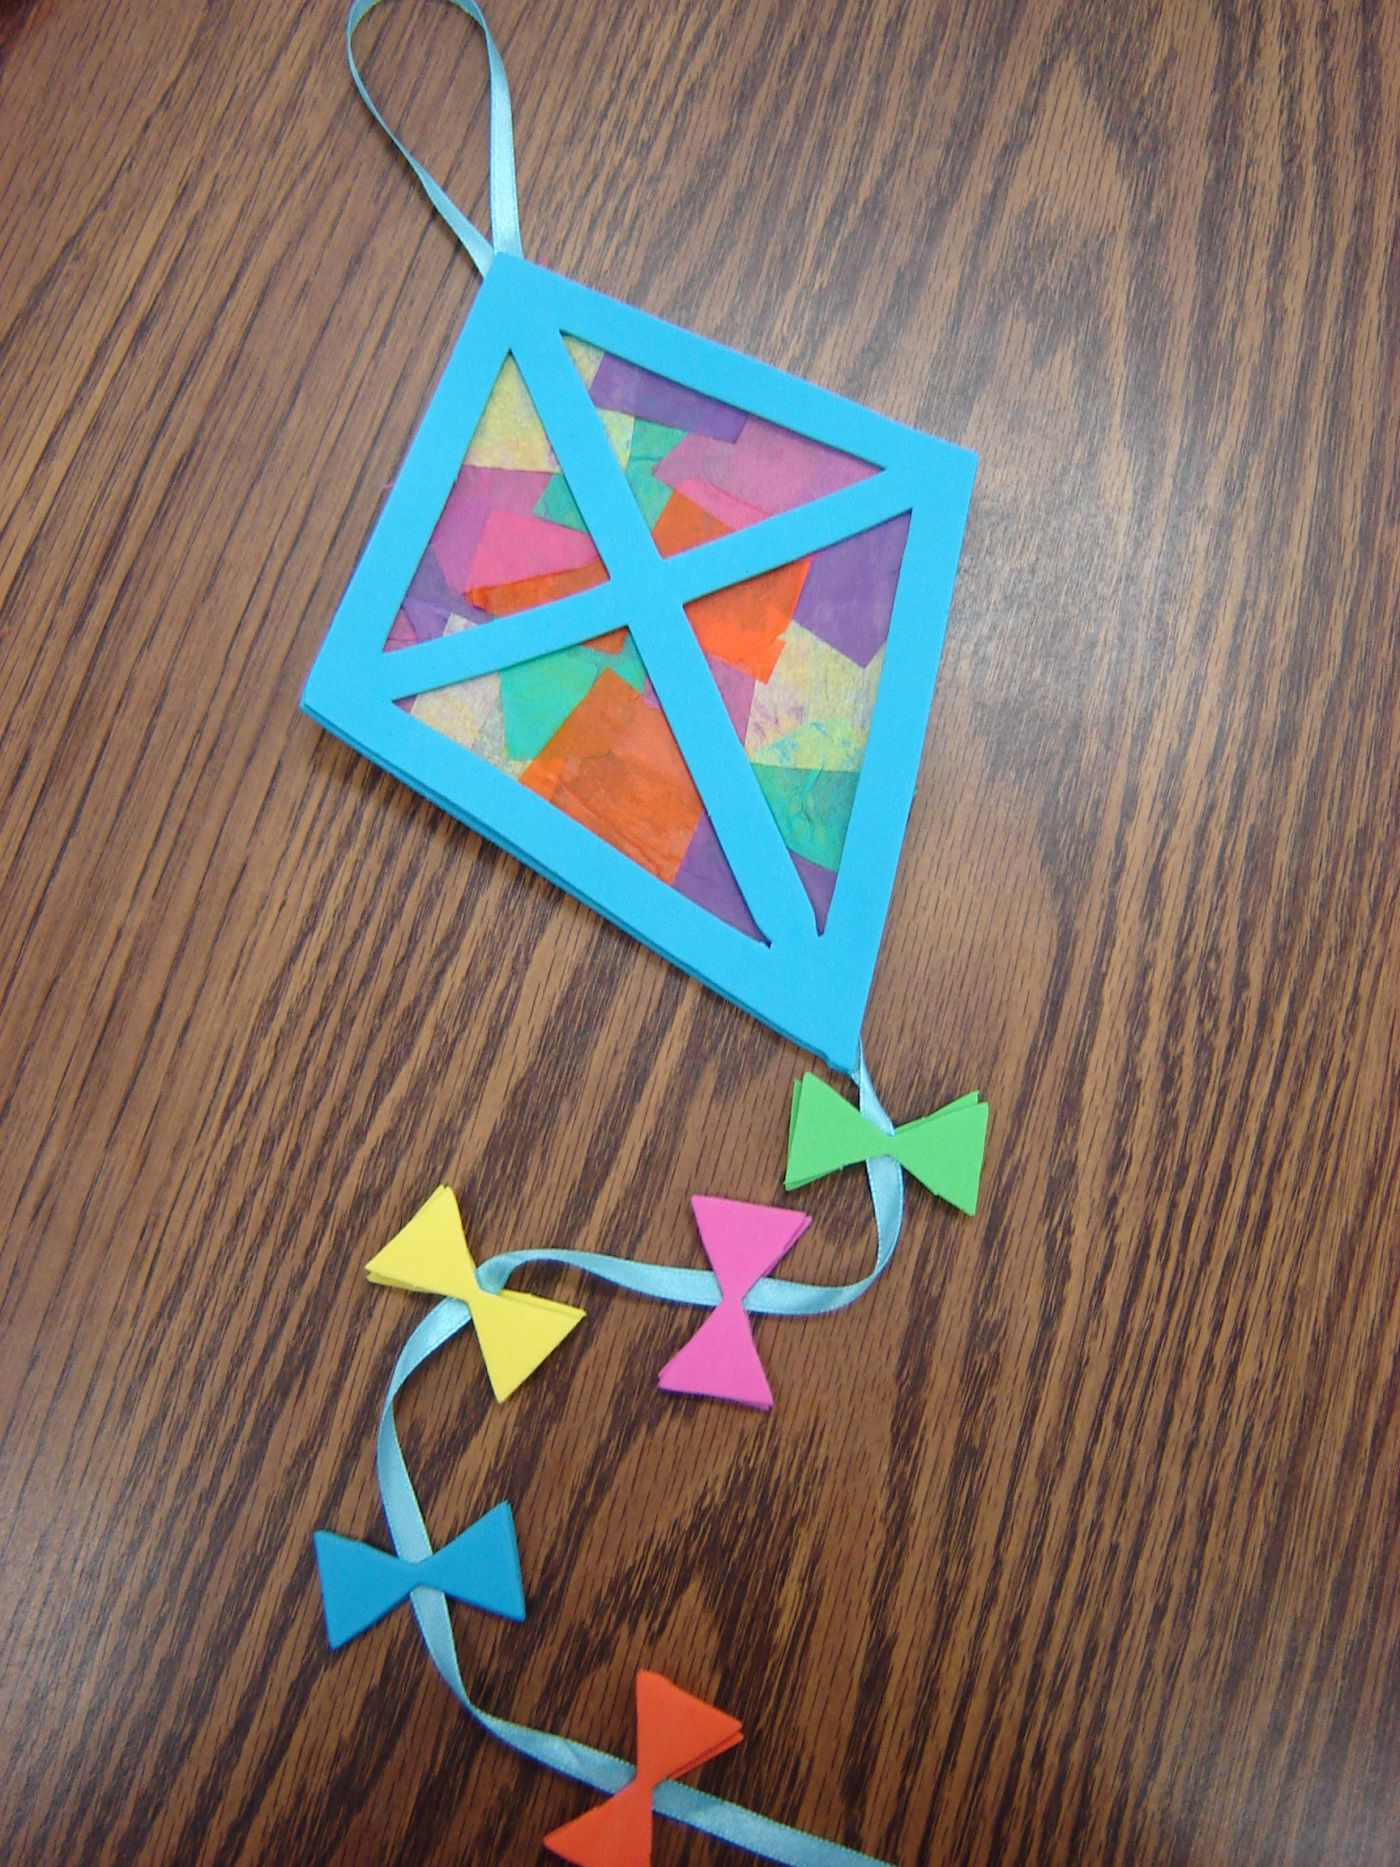 Kite Project Perfect Springtime Craft